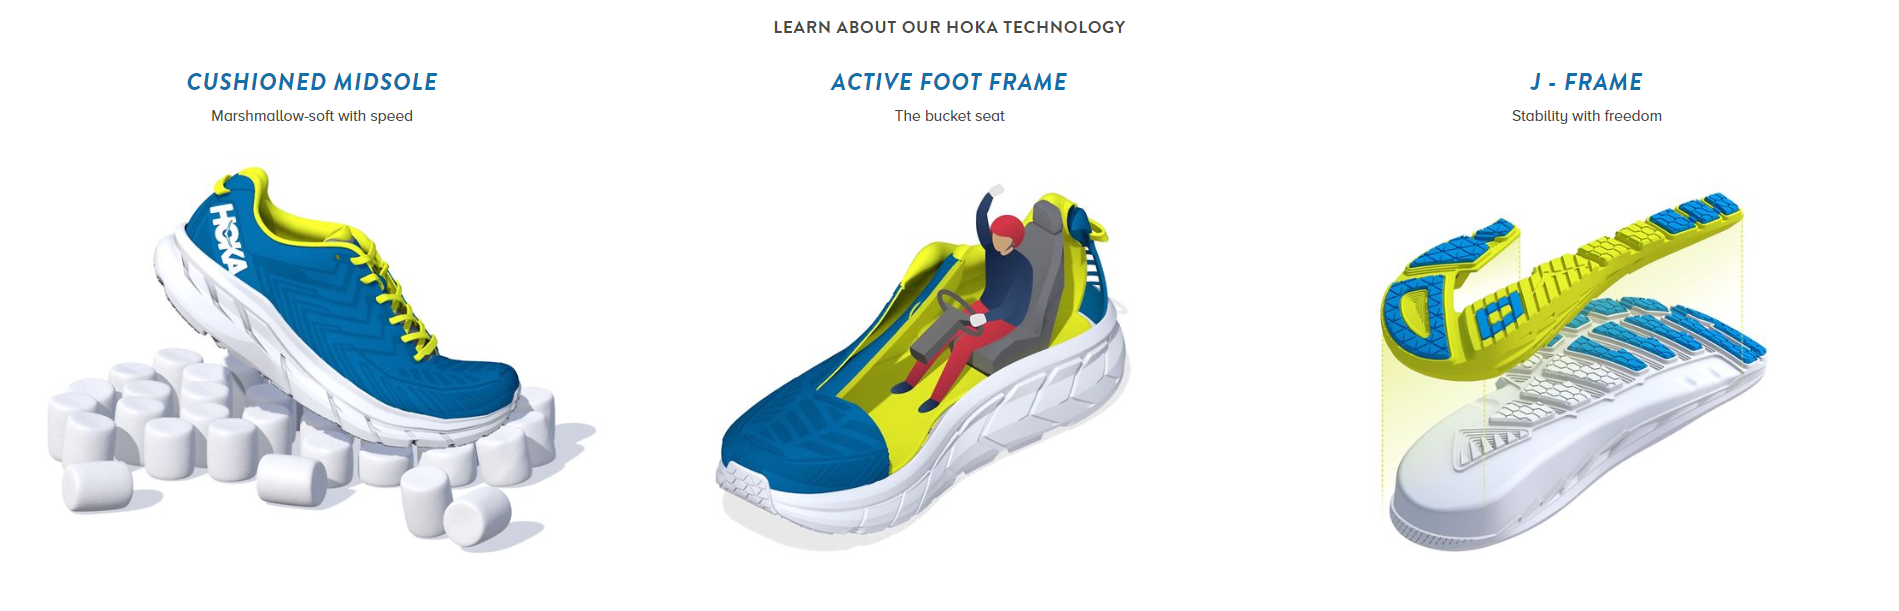 Hoka technology